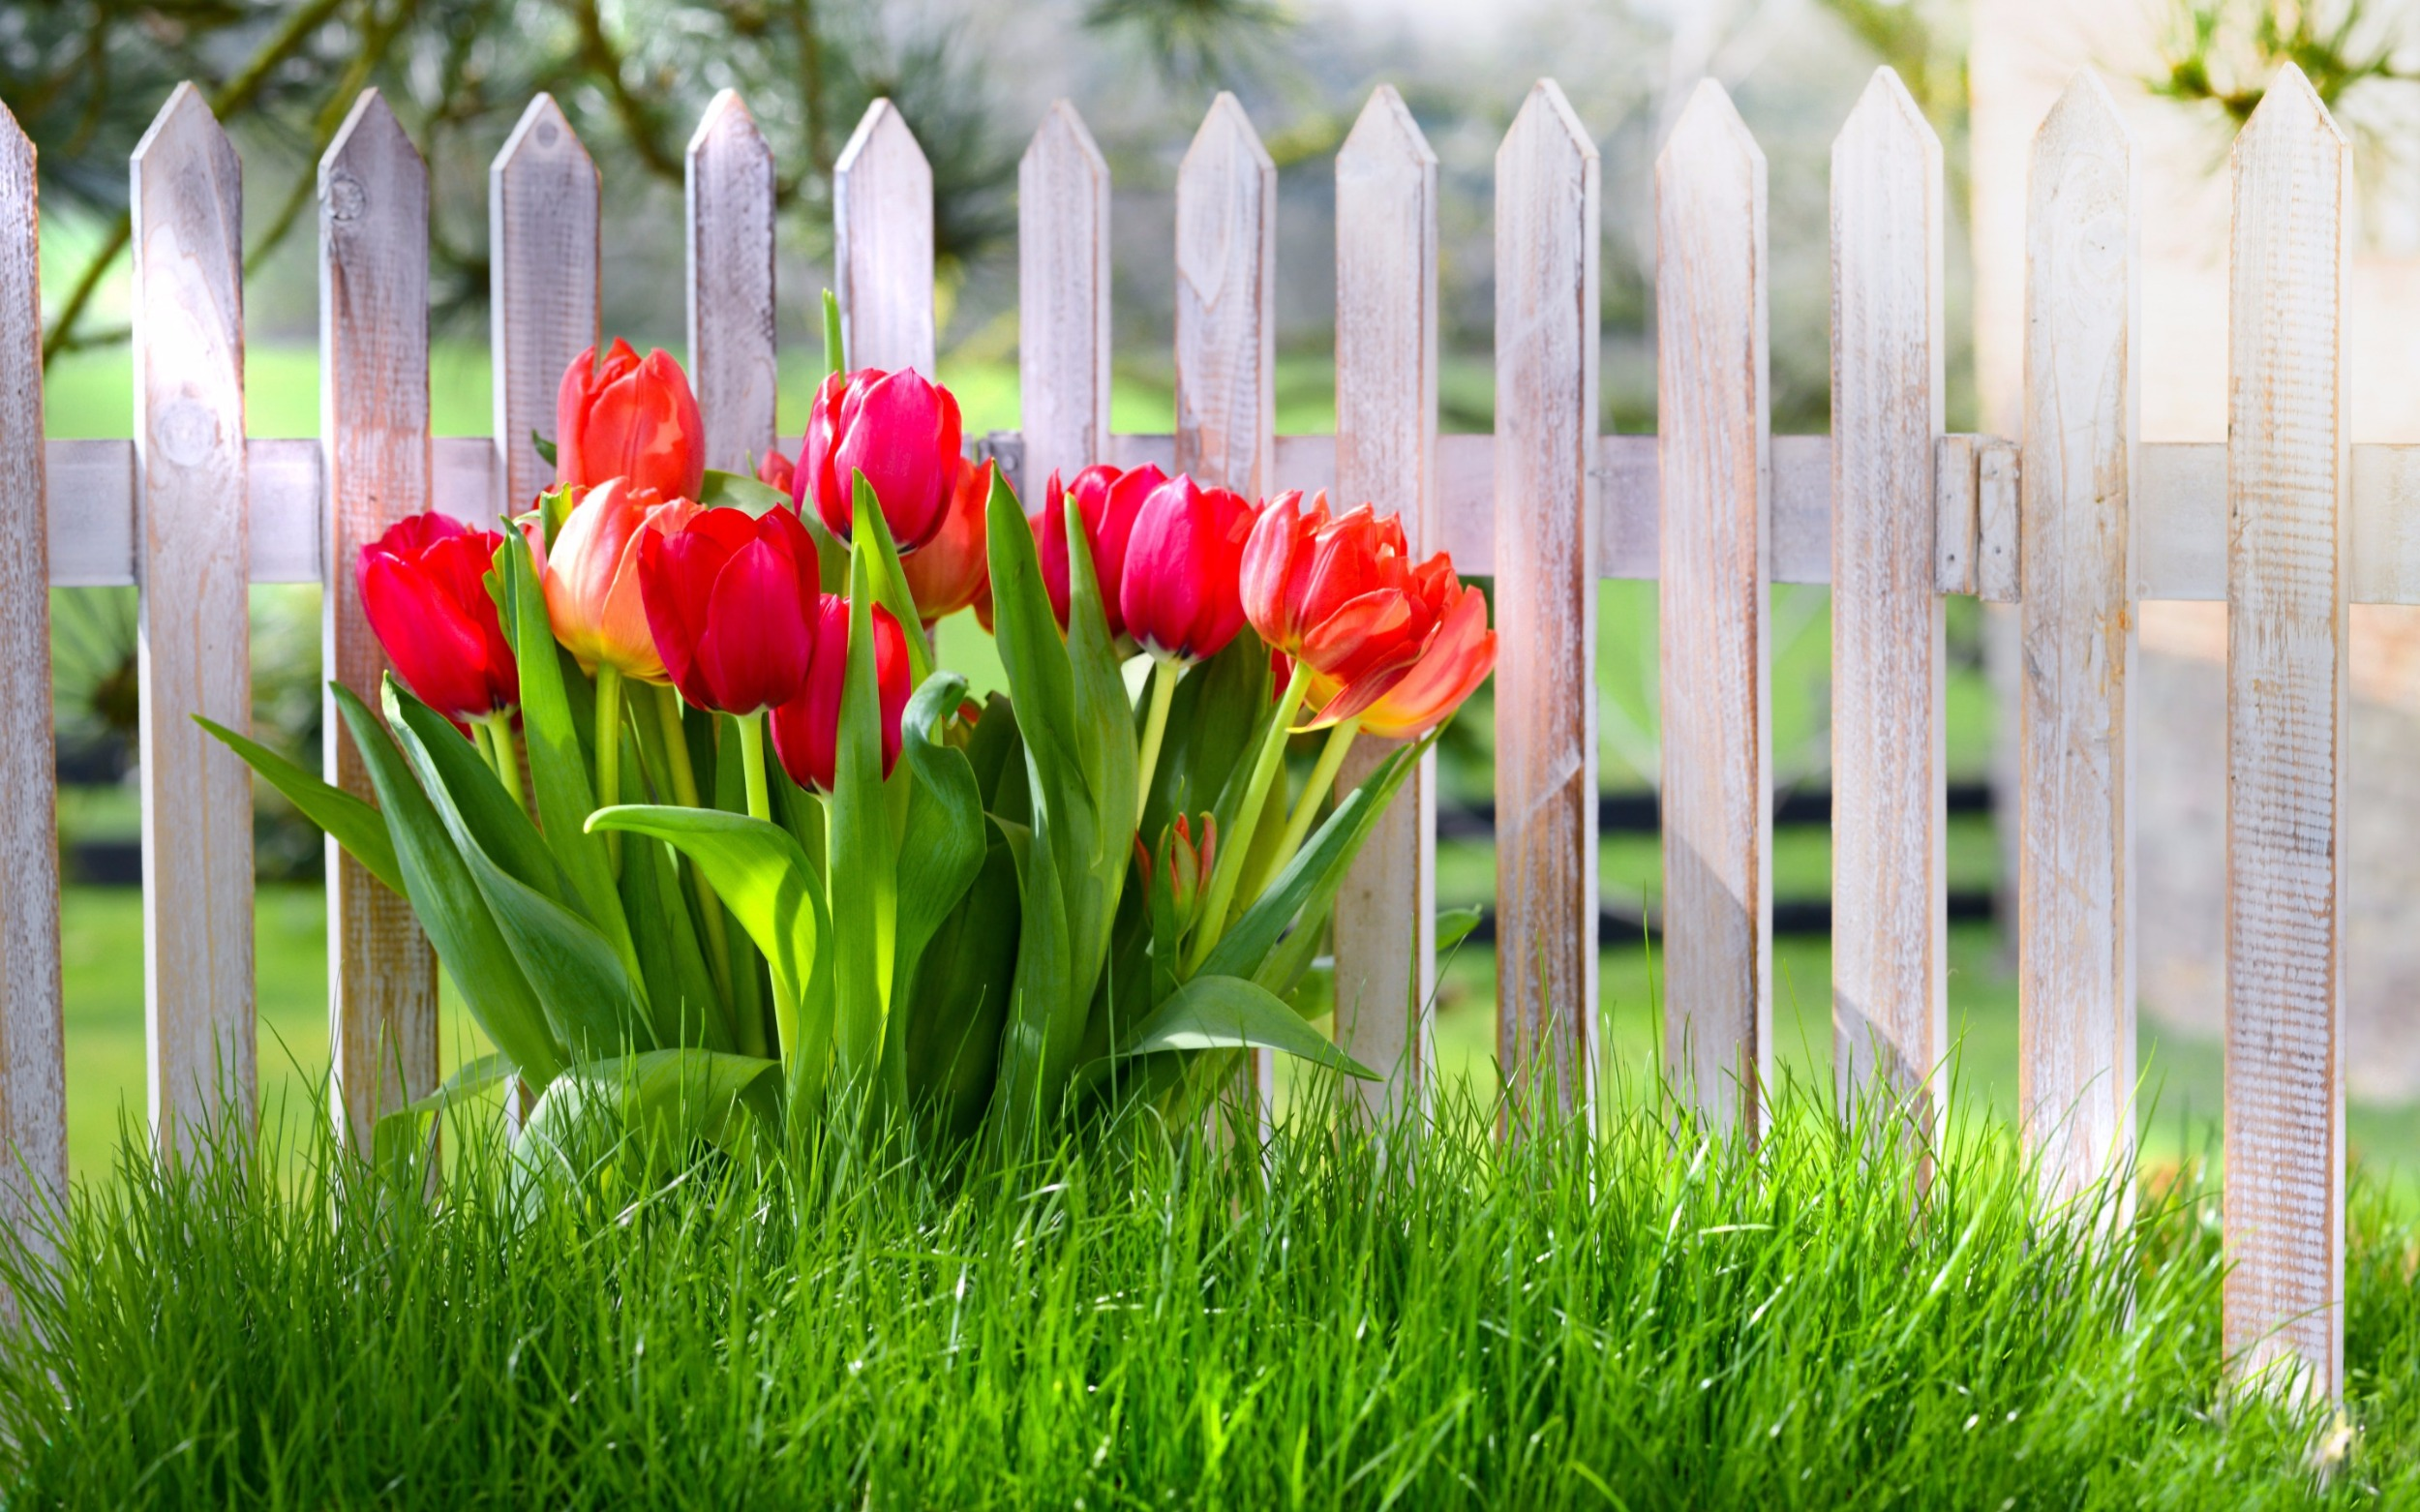 Save money water efficient landscaping, white fence, red tulips, green grass artificial turf